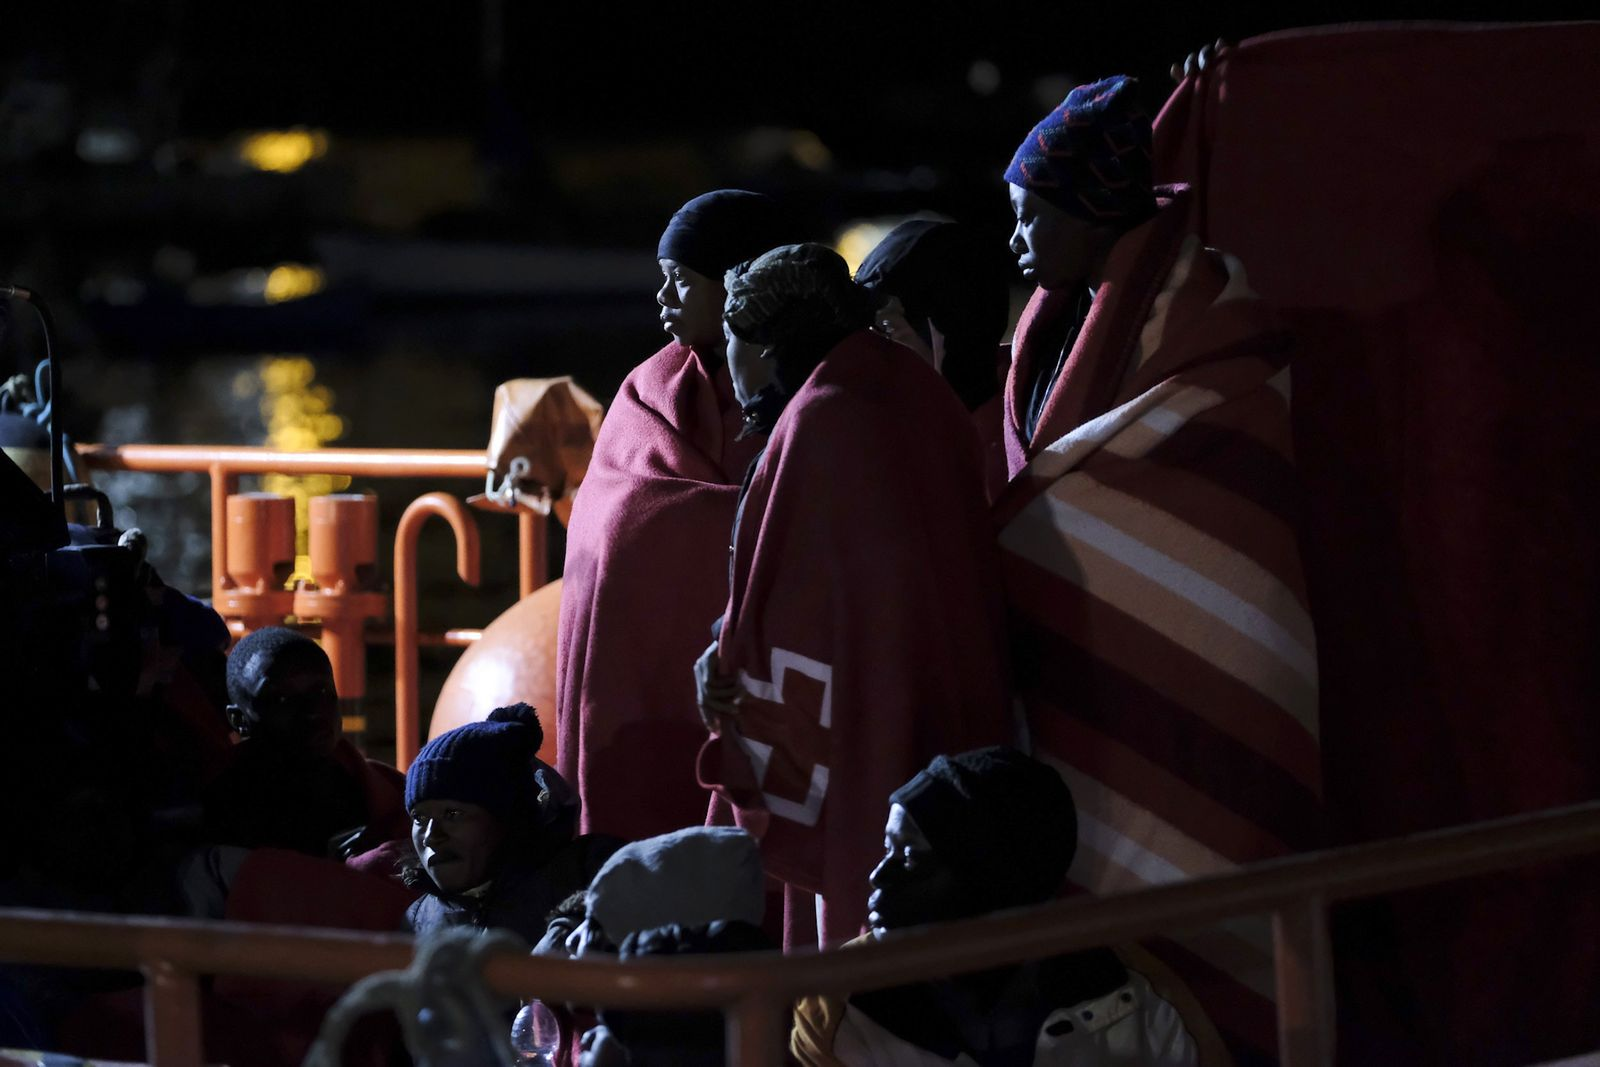 33 Migrants arrive to Gran Canaria, Arguineguin, Spain - 30 Jan 2020